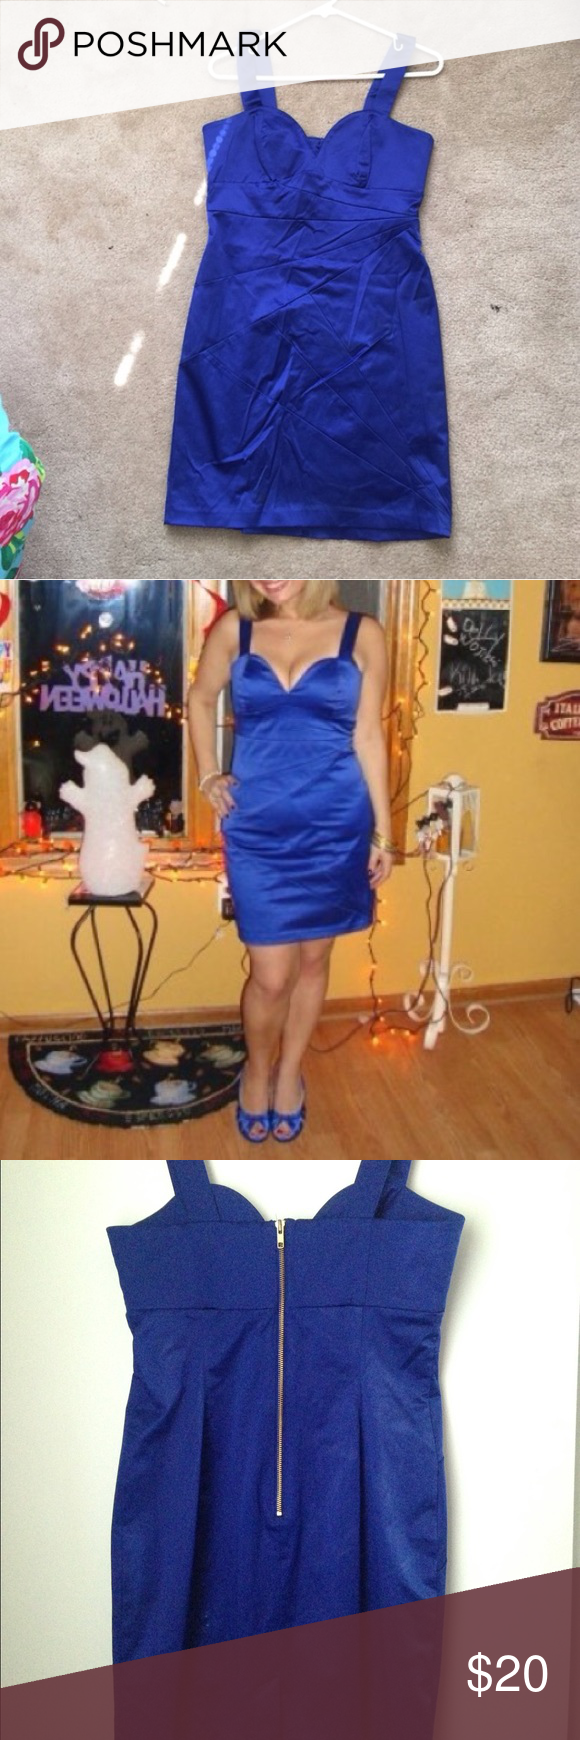 Royal Blue Sweetheart Dress Super cute royal blue dress. This dress is form fitting and reaches about mid thigh. The material is a velvety blue that has a little shine to it. There is a slip underneath. No rips or fading of color. H&M Dresses Mini